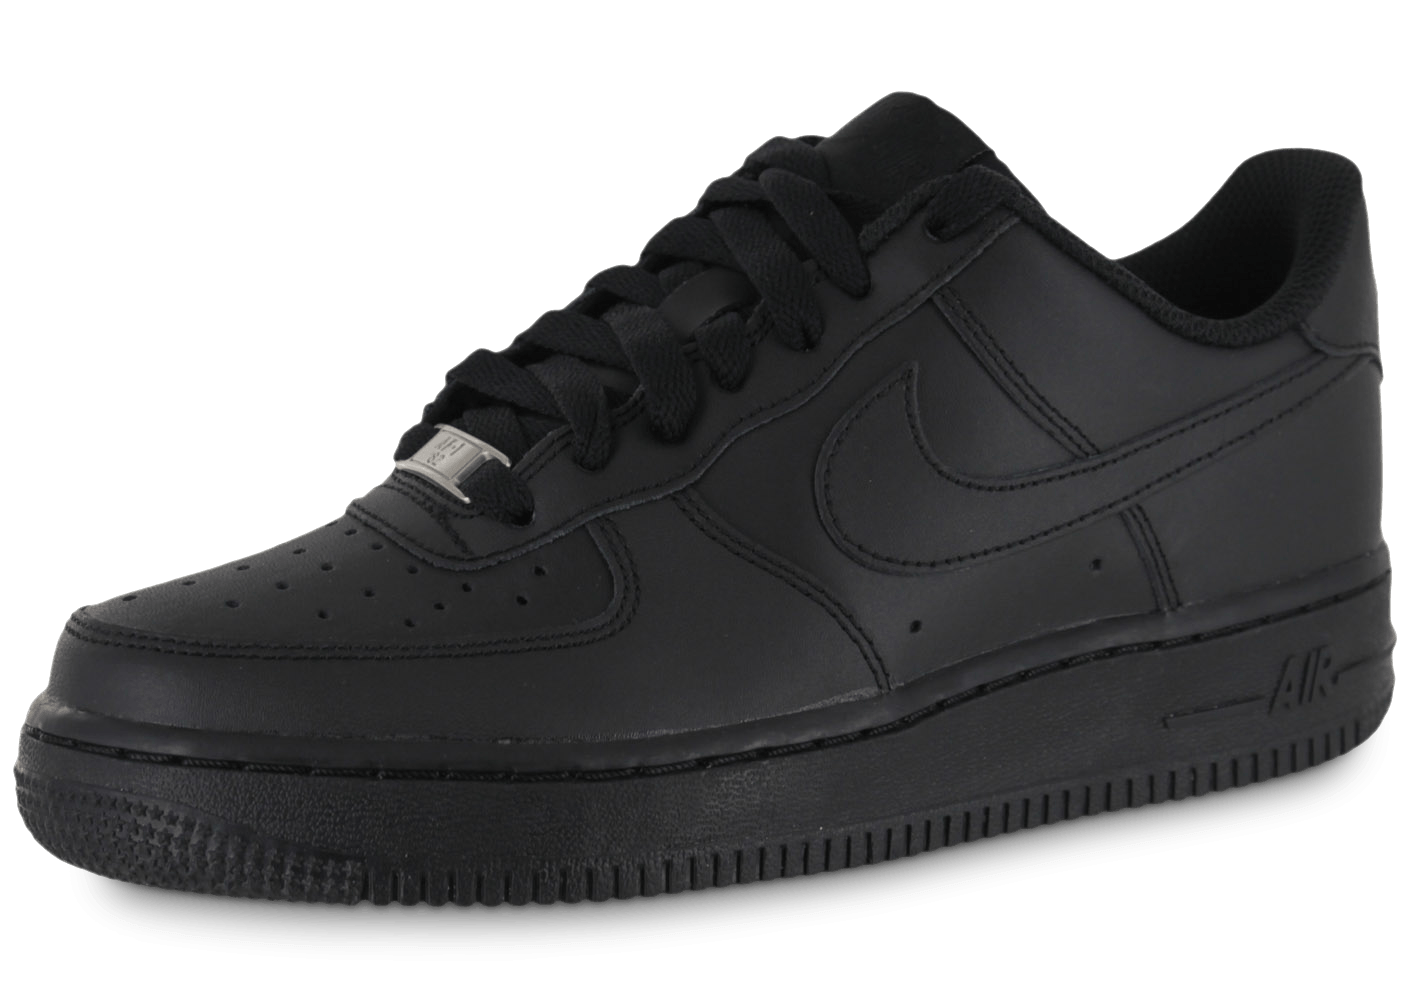 nike air force 1 junior noire chaussures chaussures. Black Bedroom Furniture Sets. Home Design Ideas